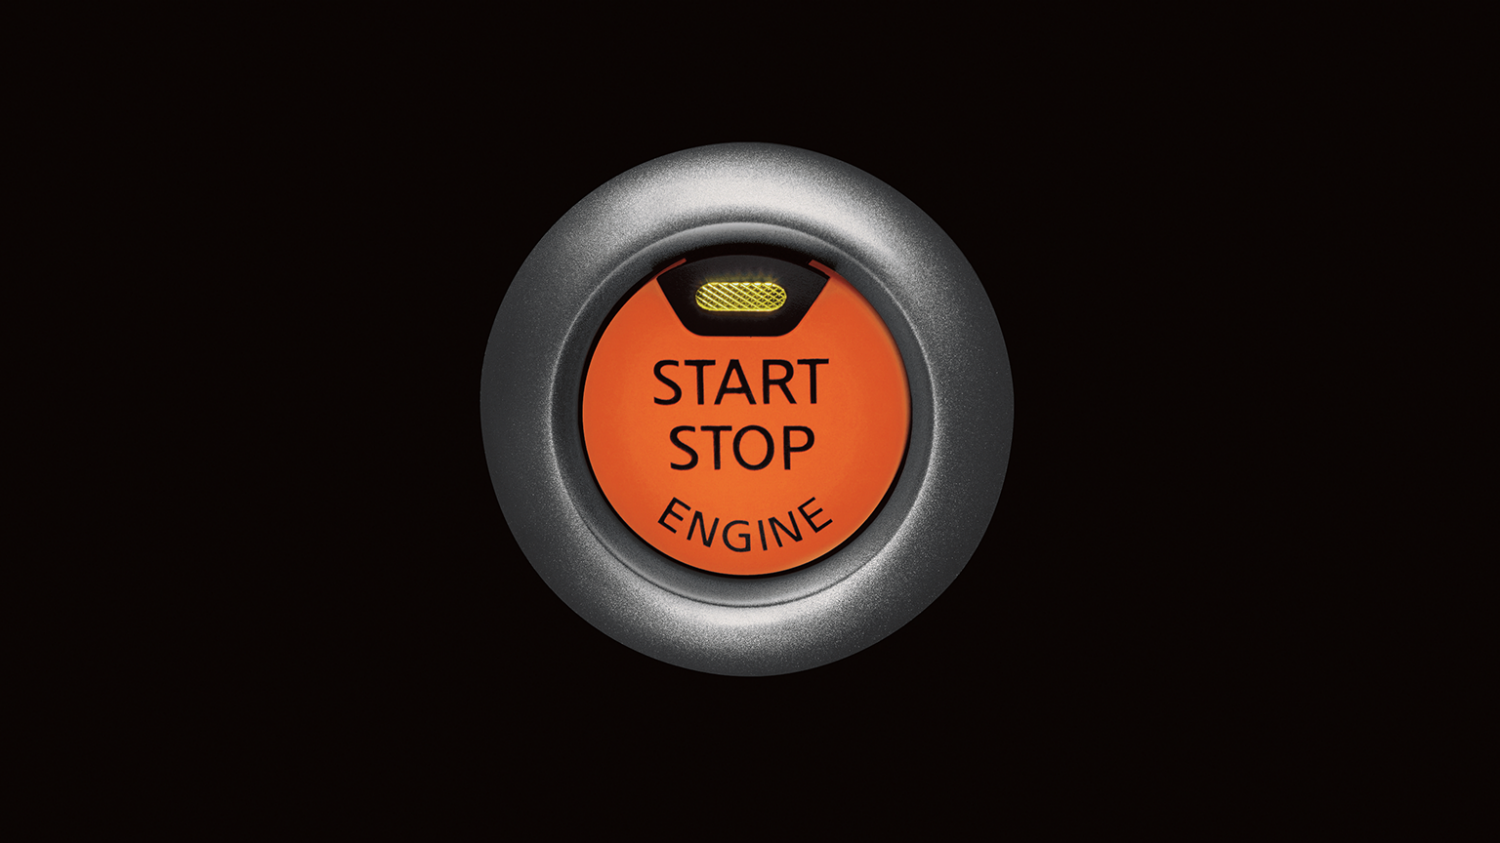 NISSAN NOTE – Start-/Stopp-Knopf